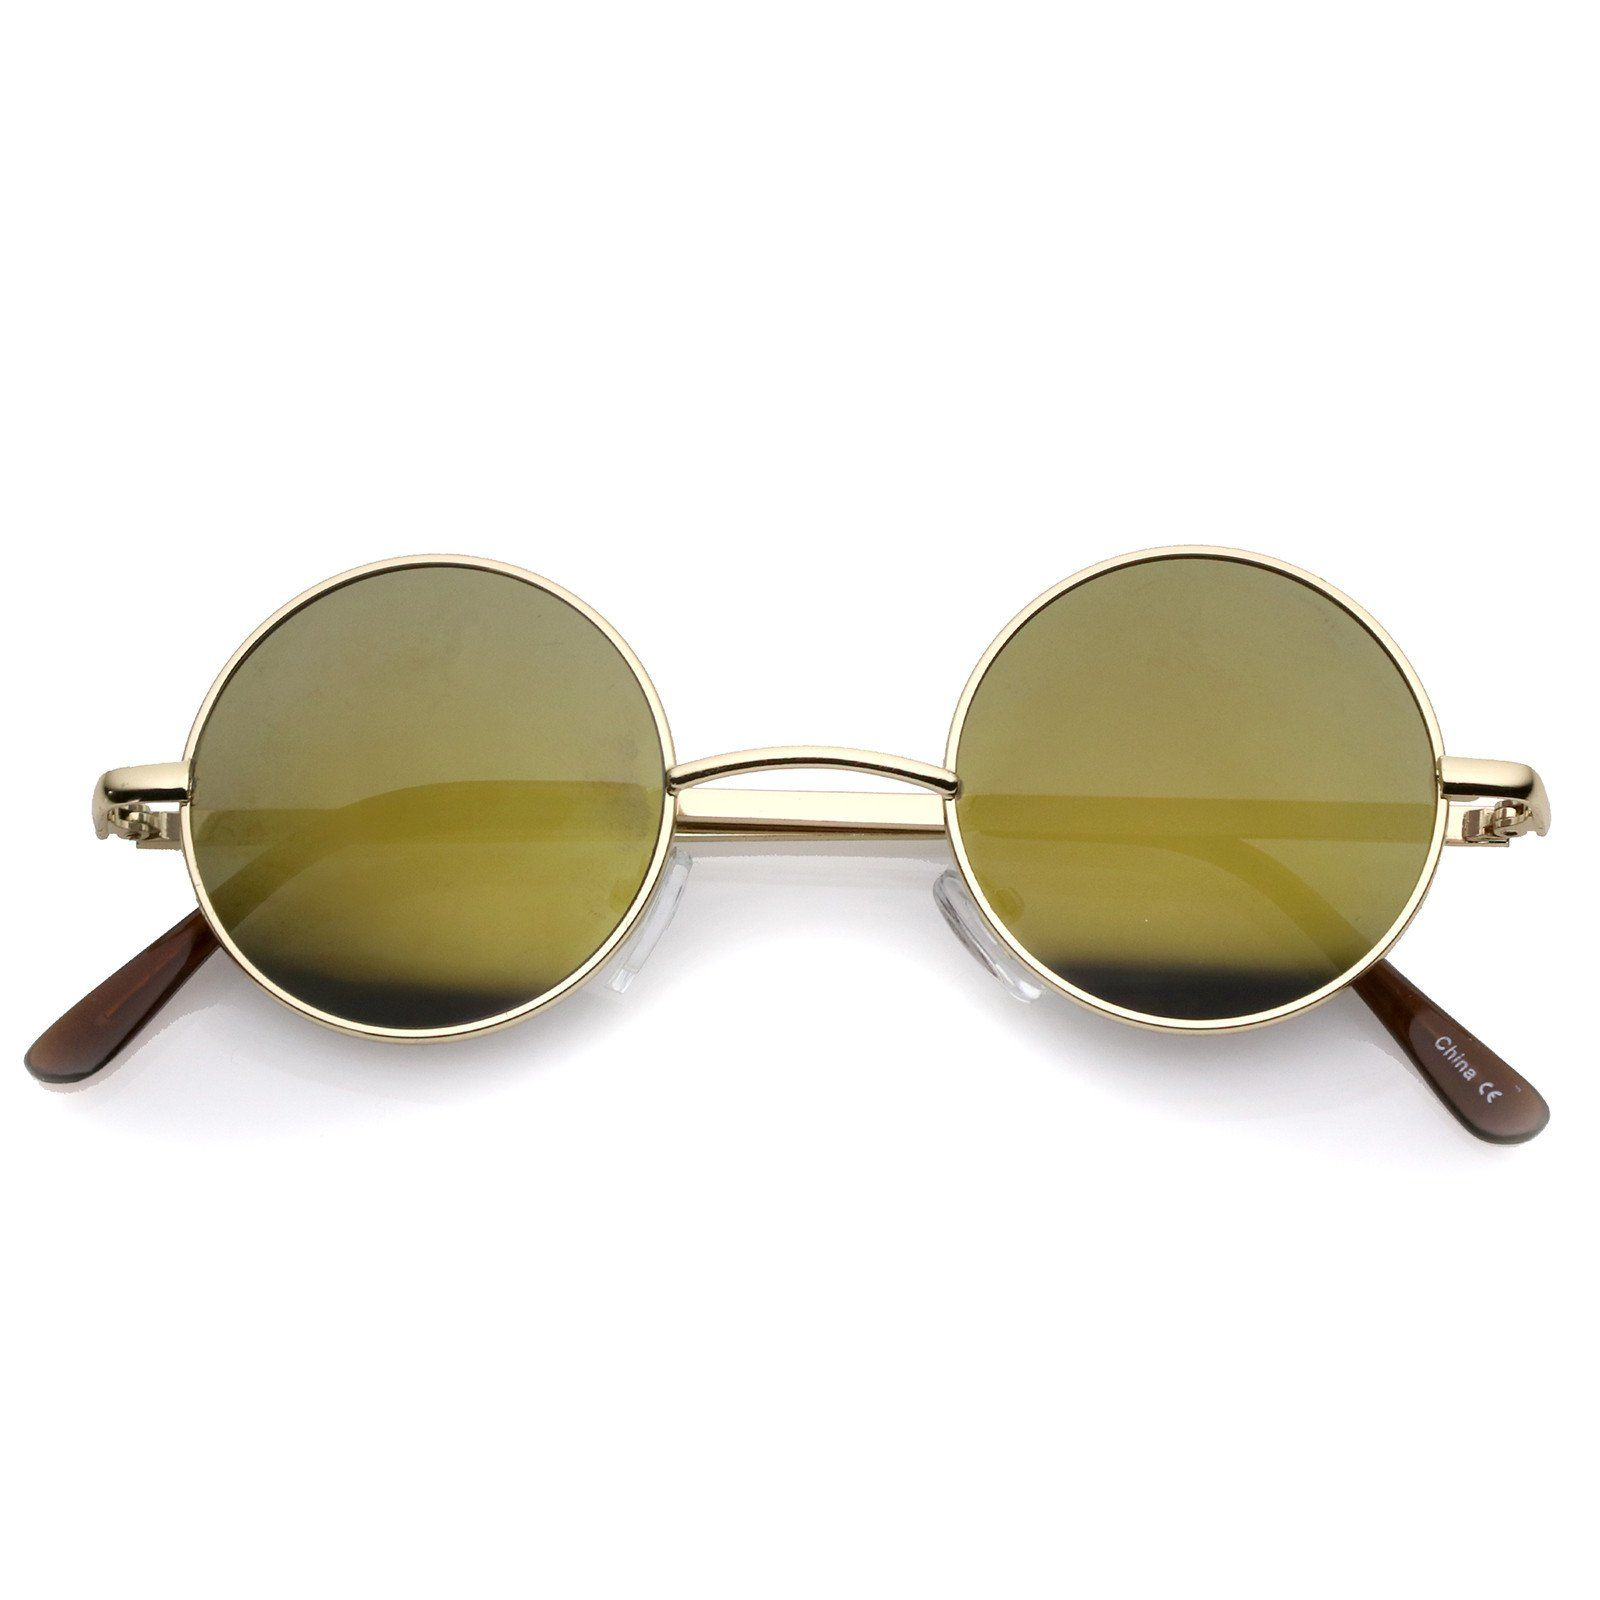 f840d4e9522 Small Retro Lennon Inspired Style Colored Mirror Lens Round Metal Sunglasses  41mm